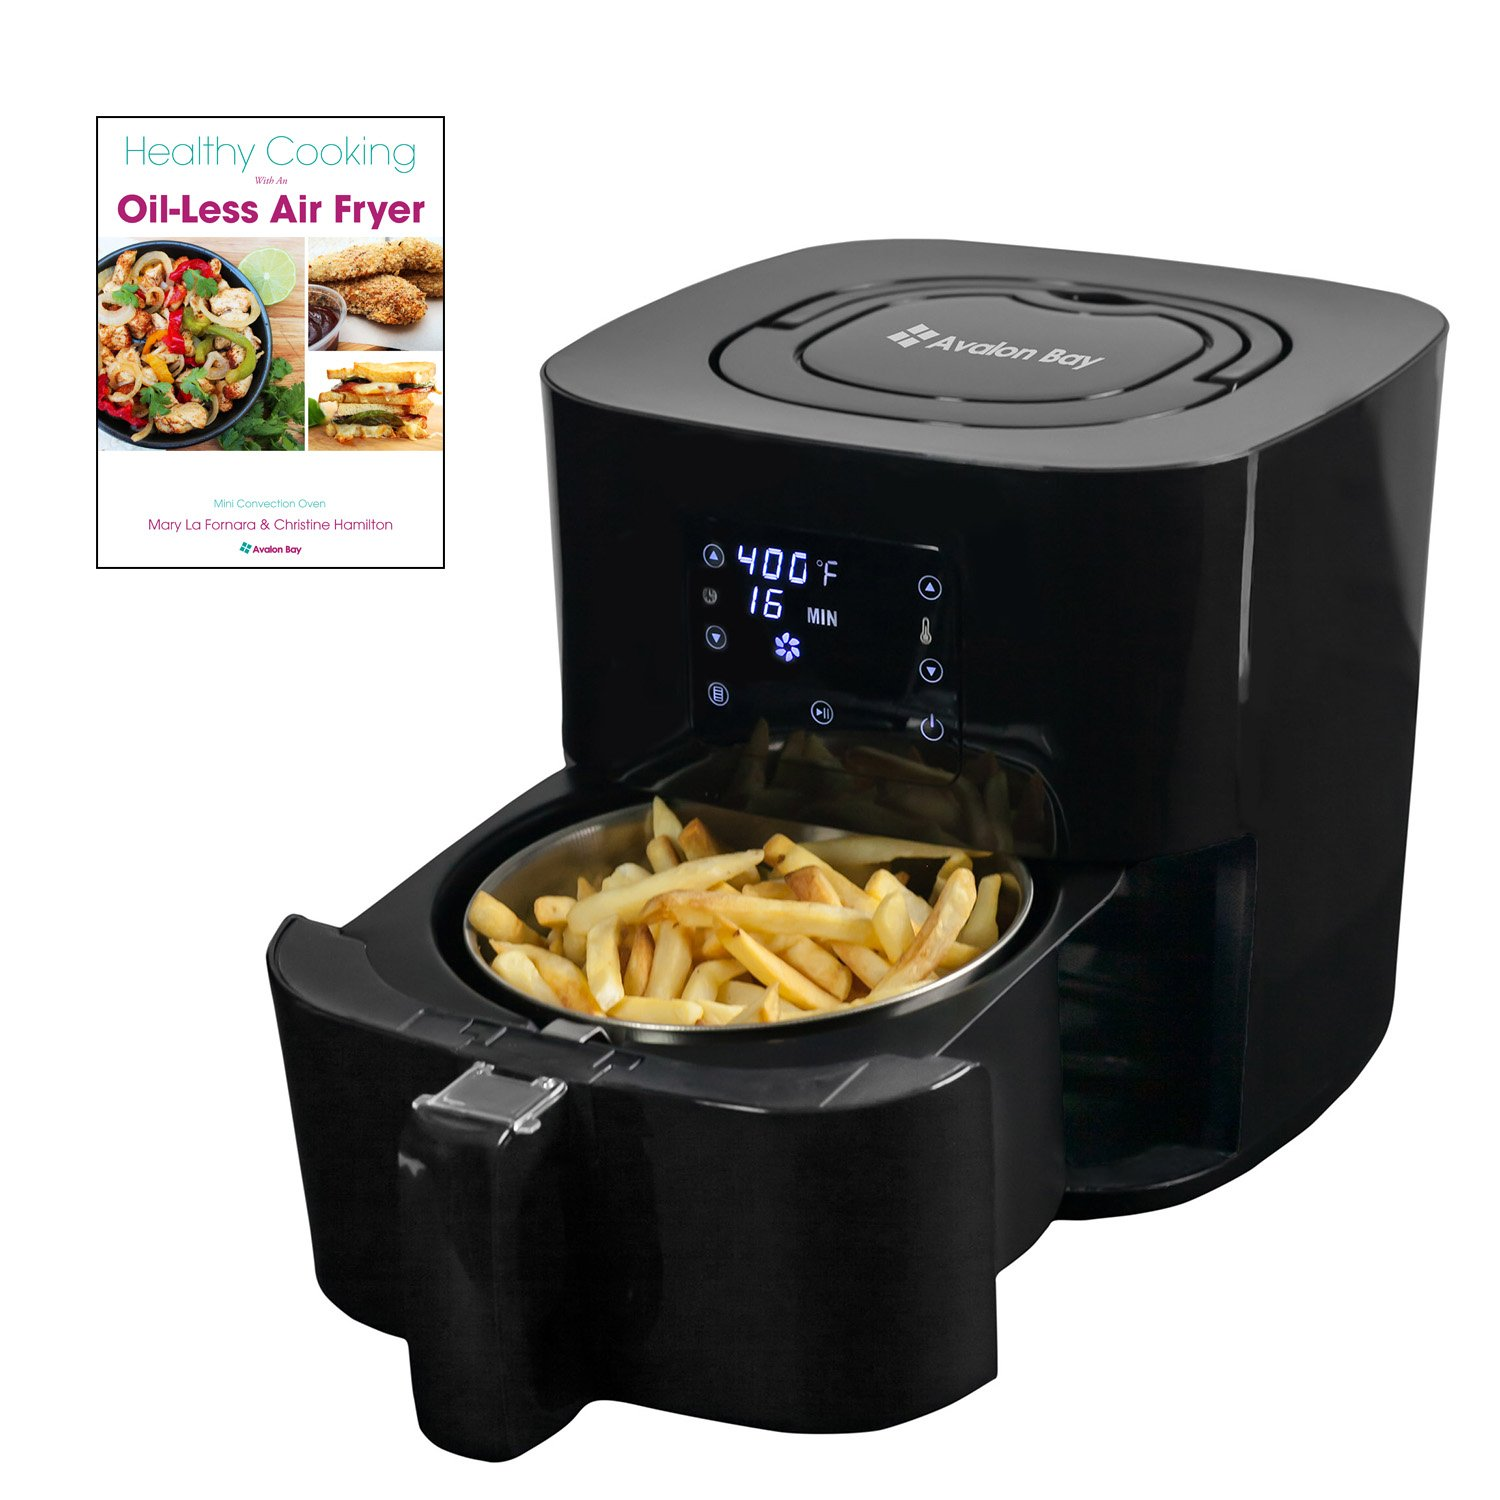 Avalon Bay Digital Air Fryer with Stainless Steel Basket, For Healthy Fried Food, 8 Presets, 2.65 Quart Capacity, AF25BSS